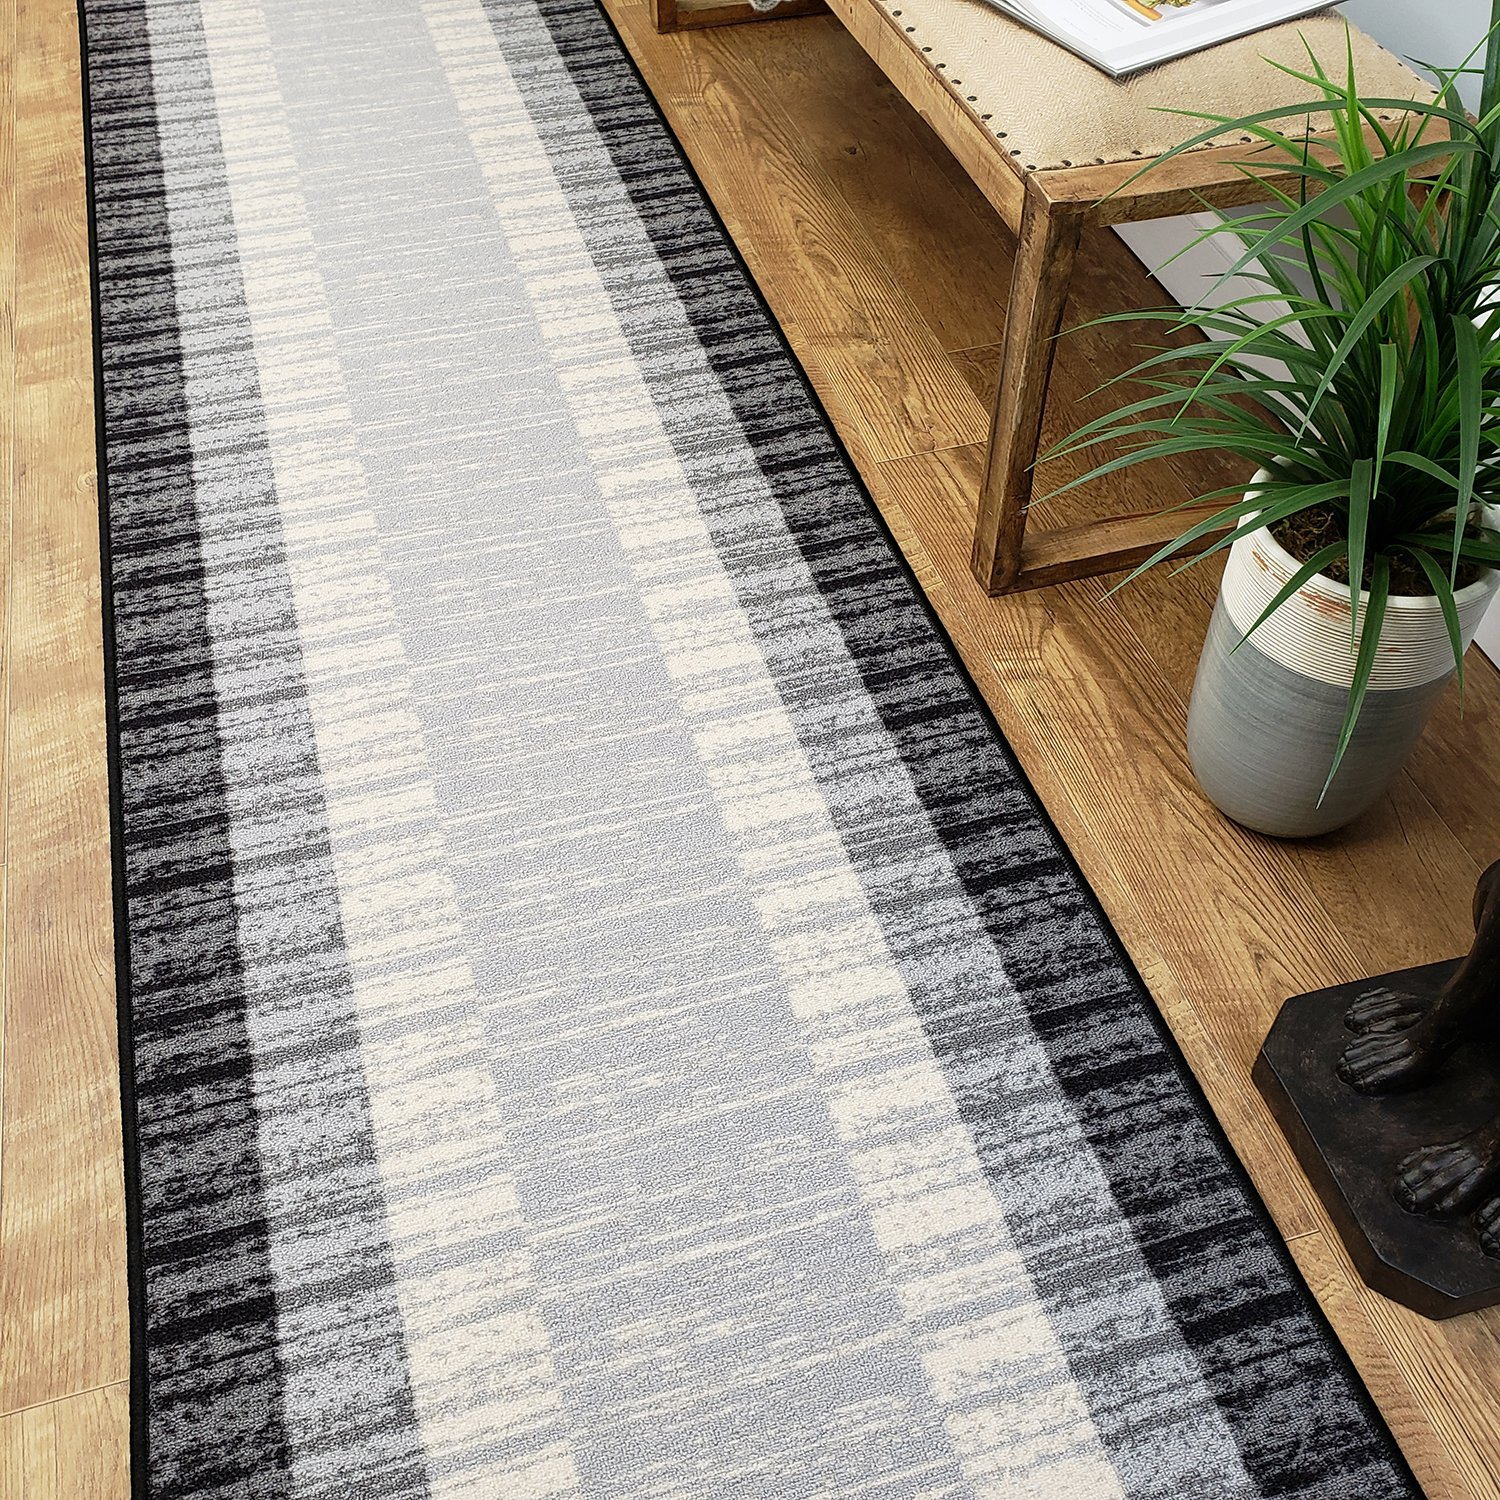 Runner Rug 2x7 Gray Border Stripe Kitchen Rugs and mats Rubber Backed Non Skid Living Room Bathroom Nursery Home Decor Under Door Entryway Floor Non Slip Washable | Made in Europe